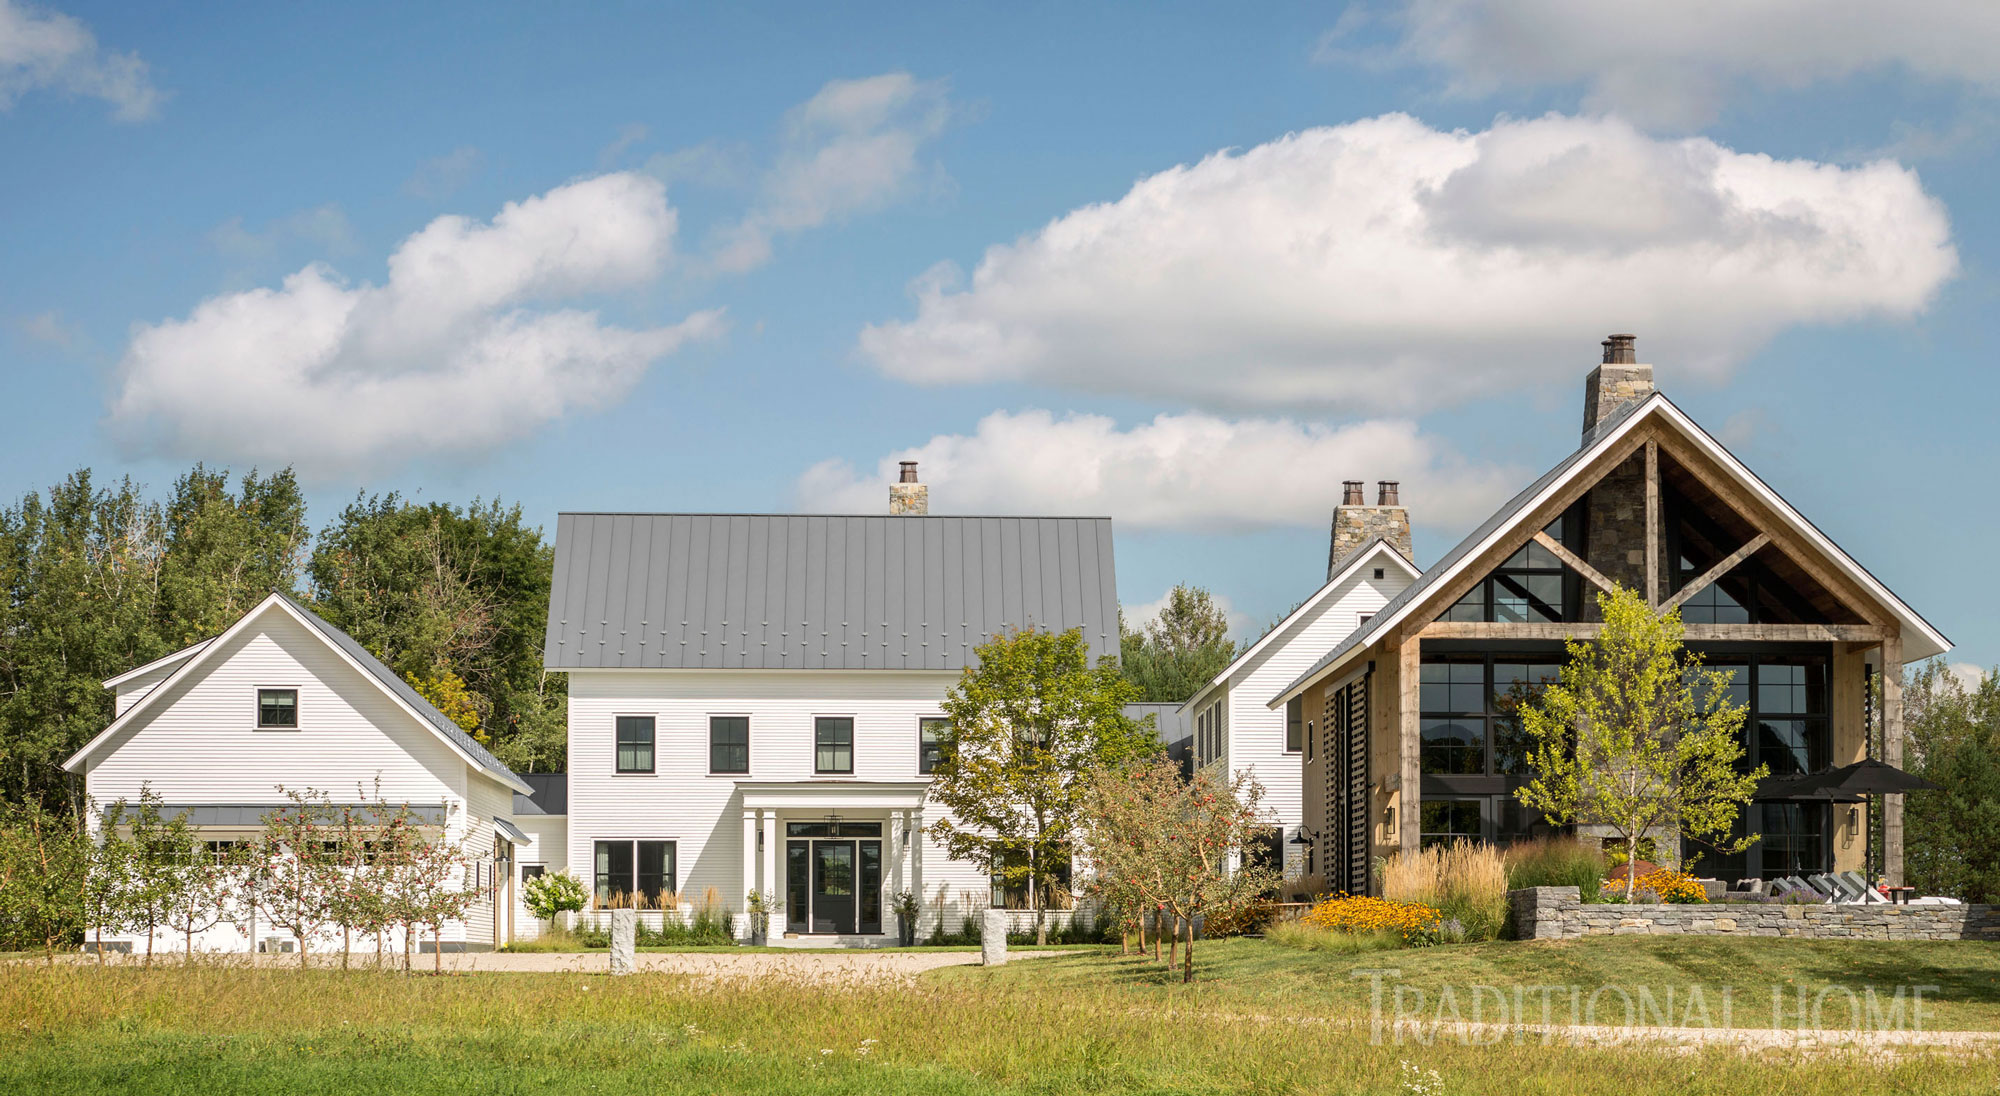 Vermont Home with Beautiful Farmhouse Style | Traditional Home